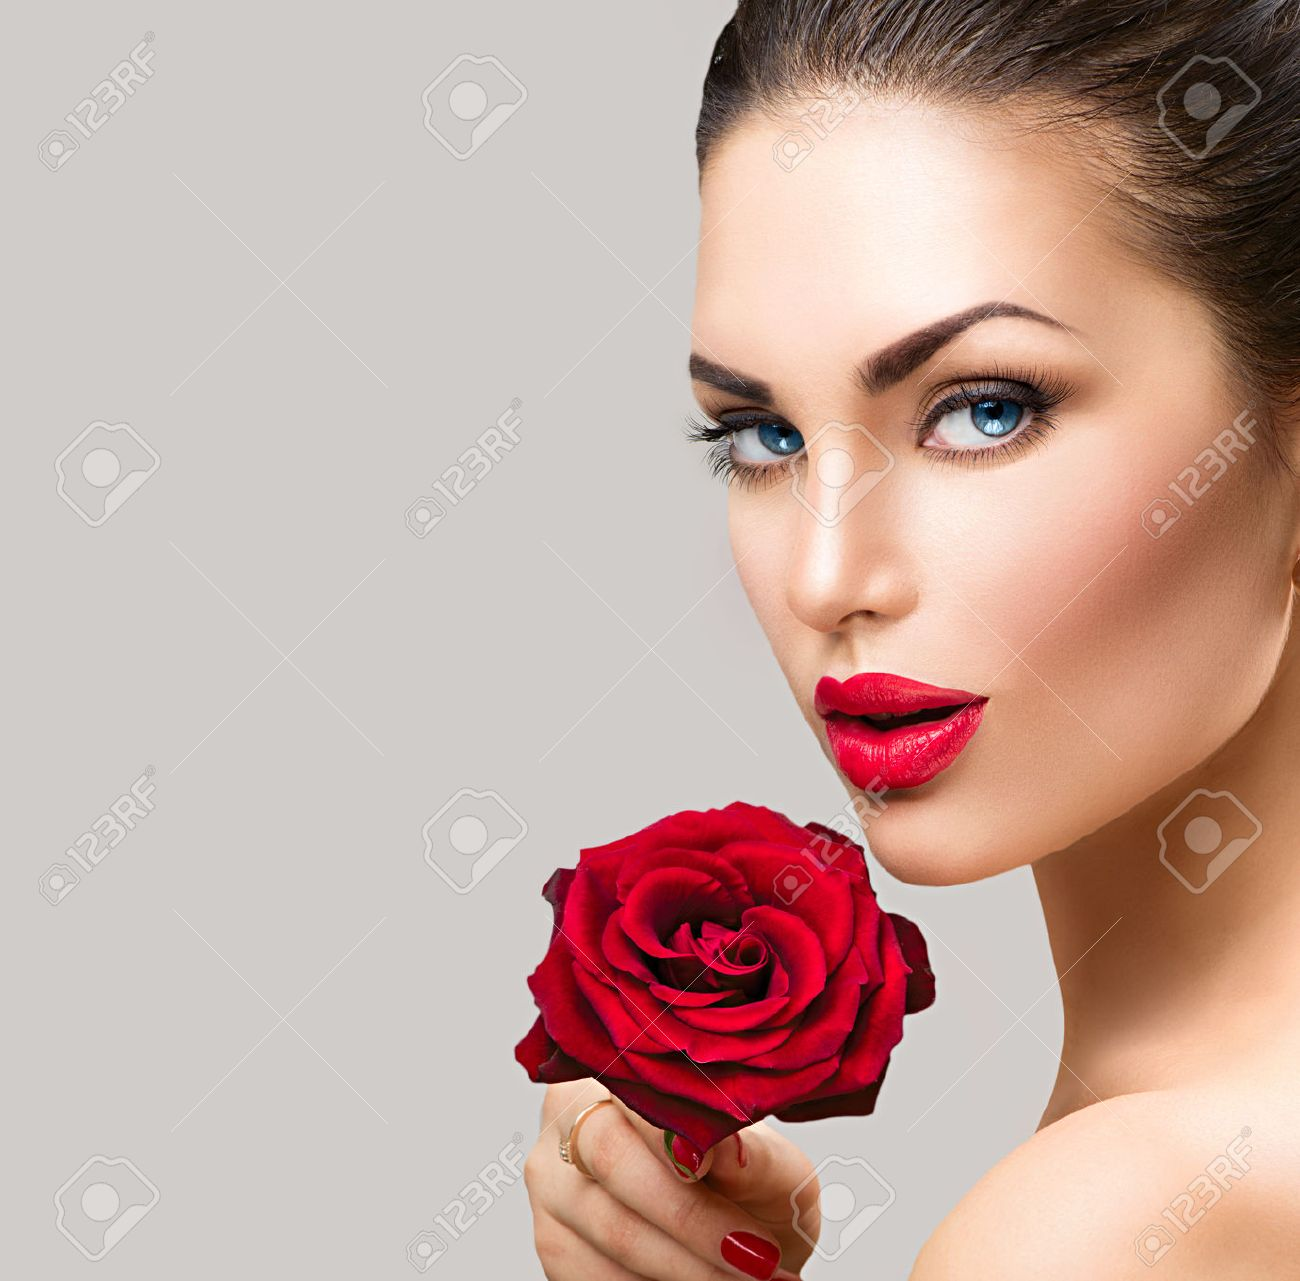 Beauty fashion model woman face. Portrait with red rose flower - 51755920